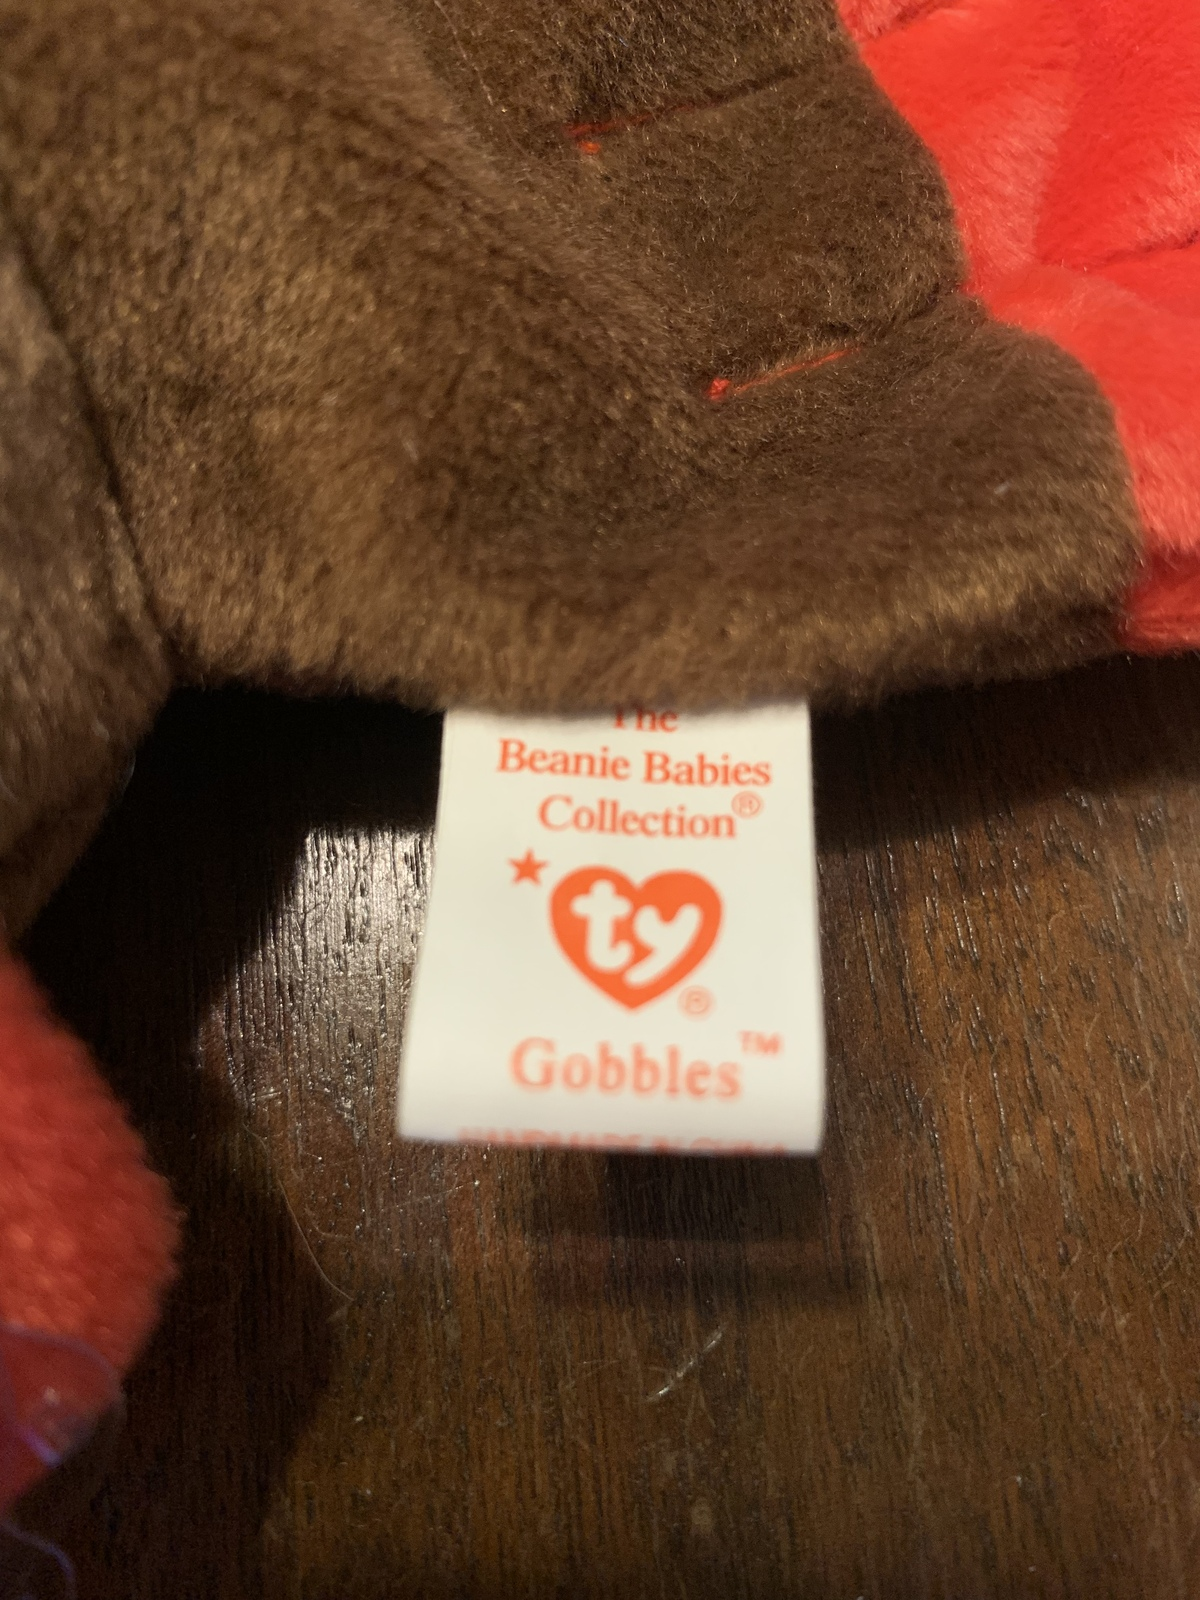 Gracie, Strut and Gobbles Beanie Babies in excellent condition